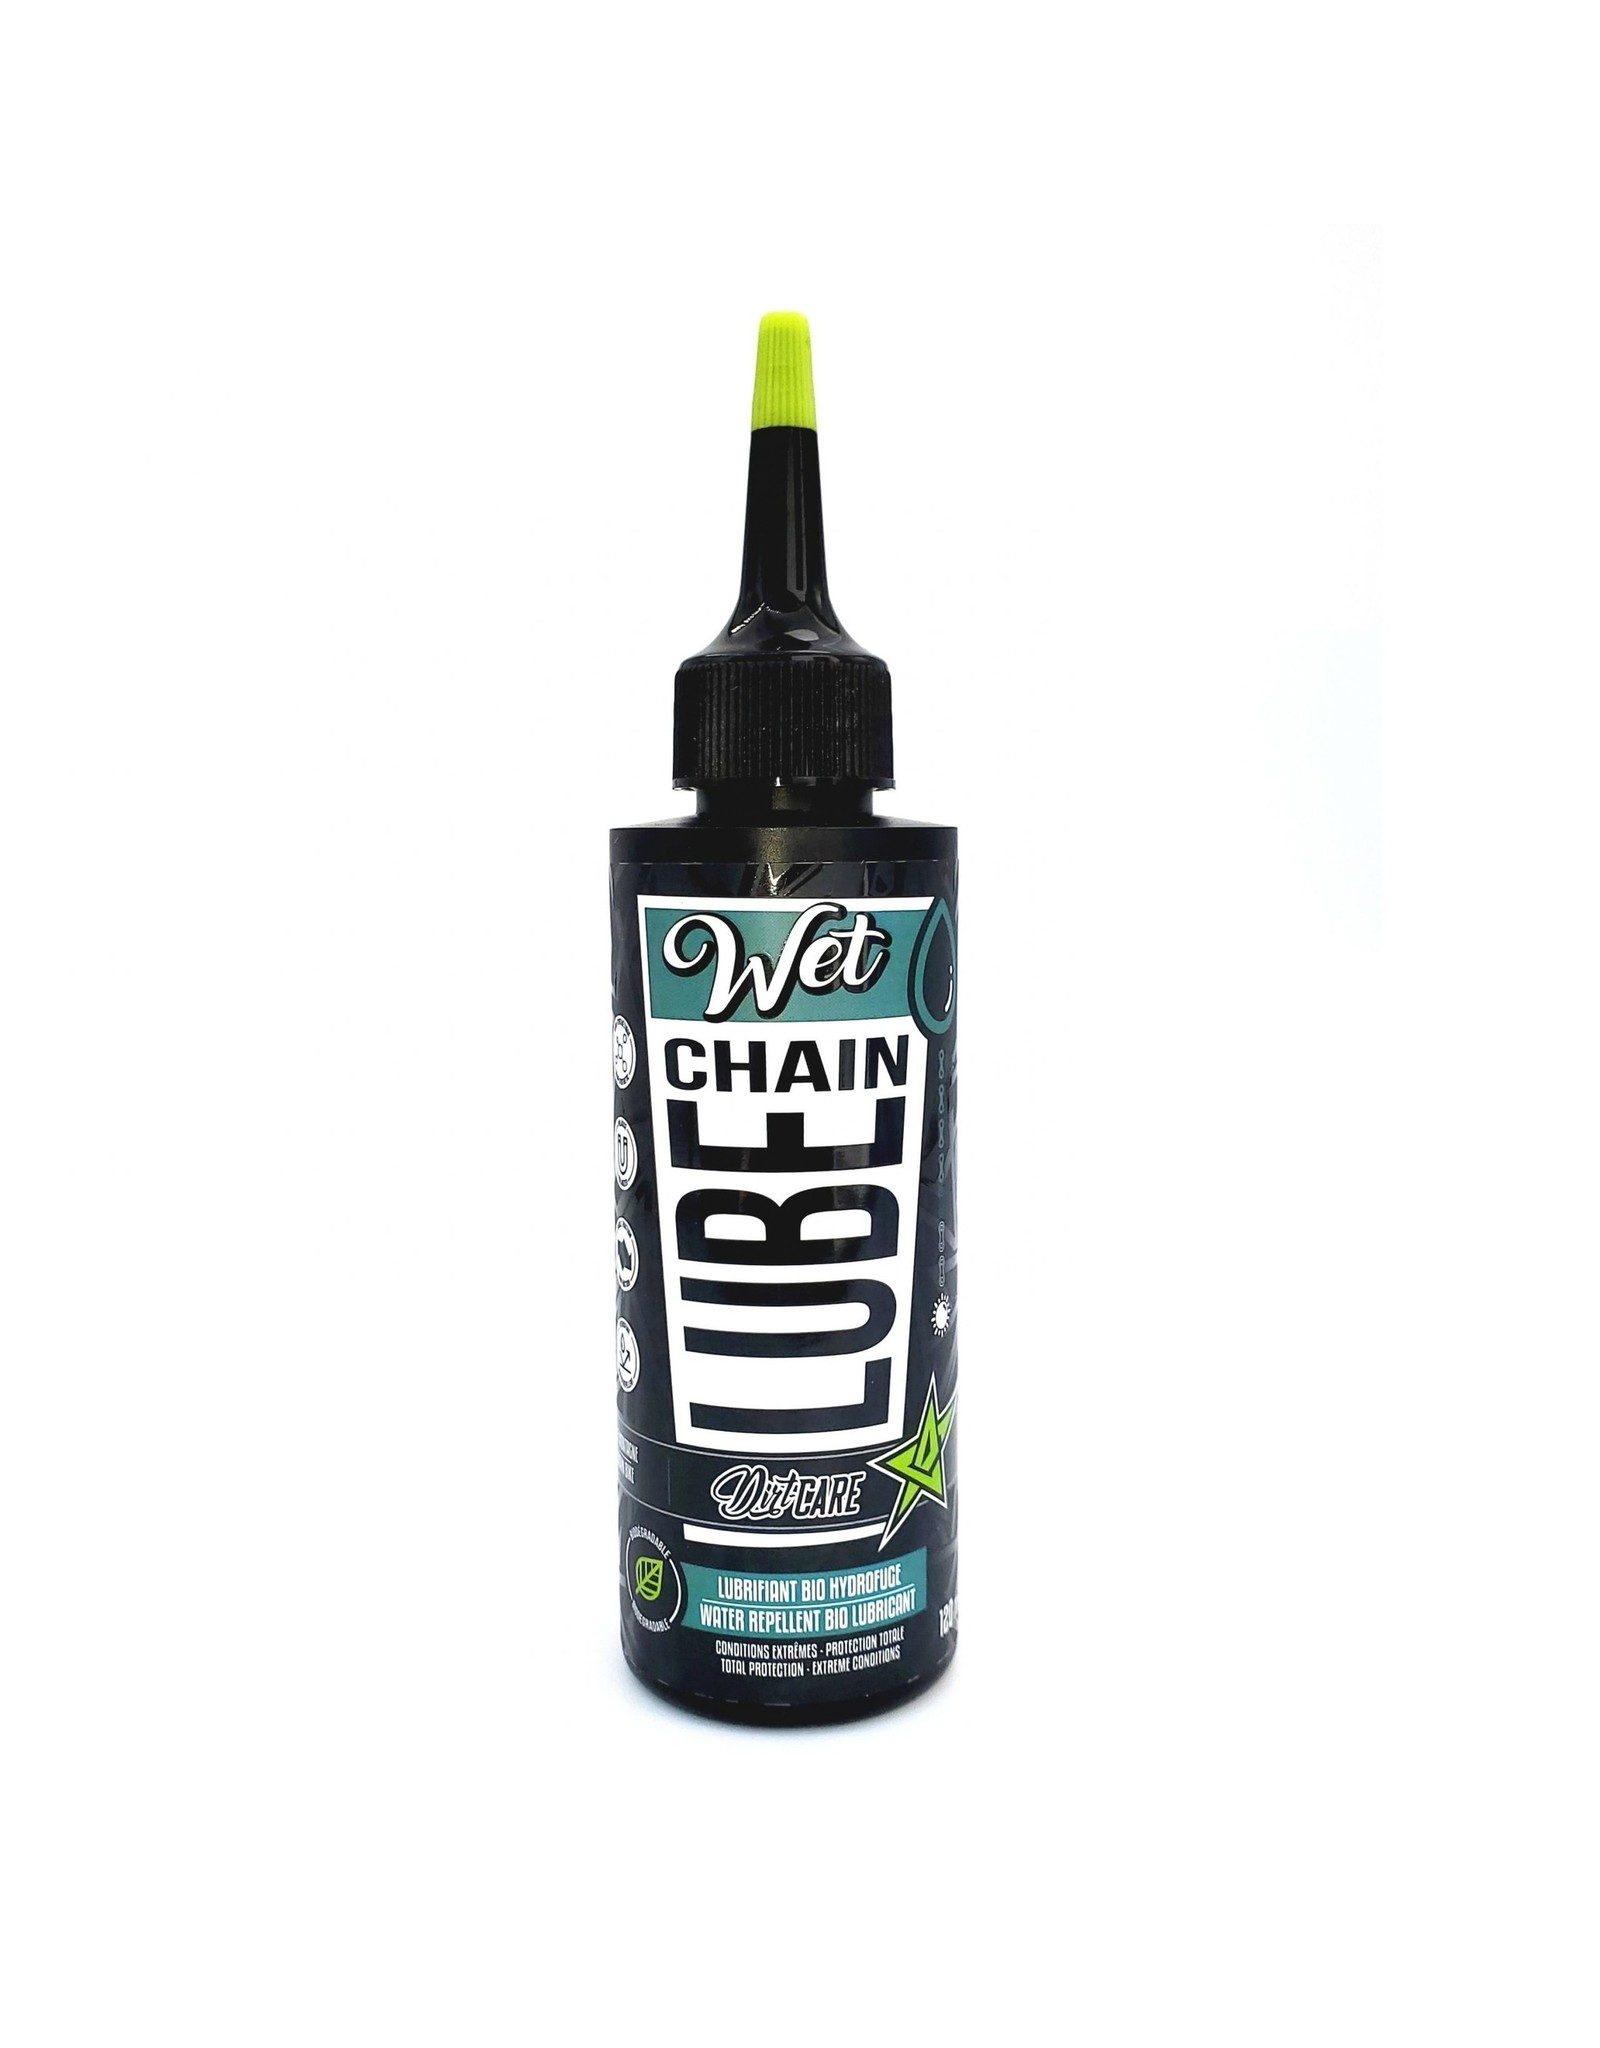 Dirt-Care Dirt-Care Chain Lube Wet 120ml